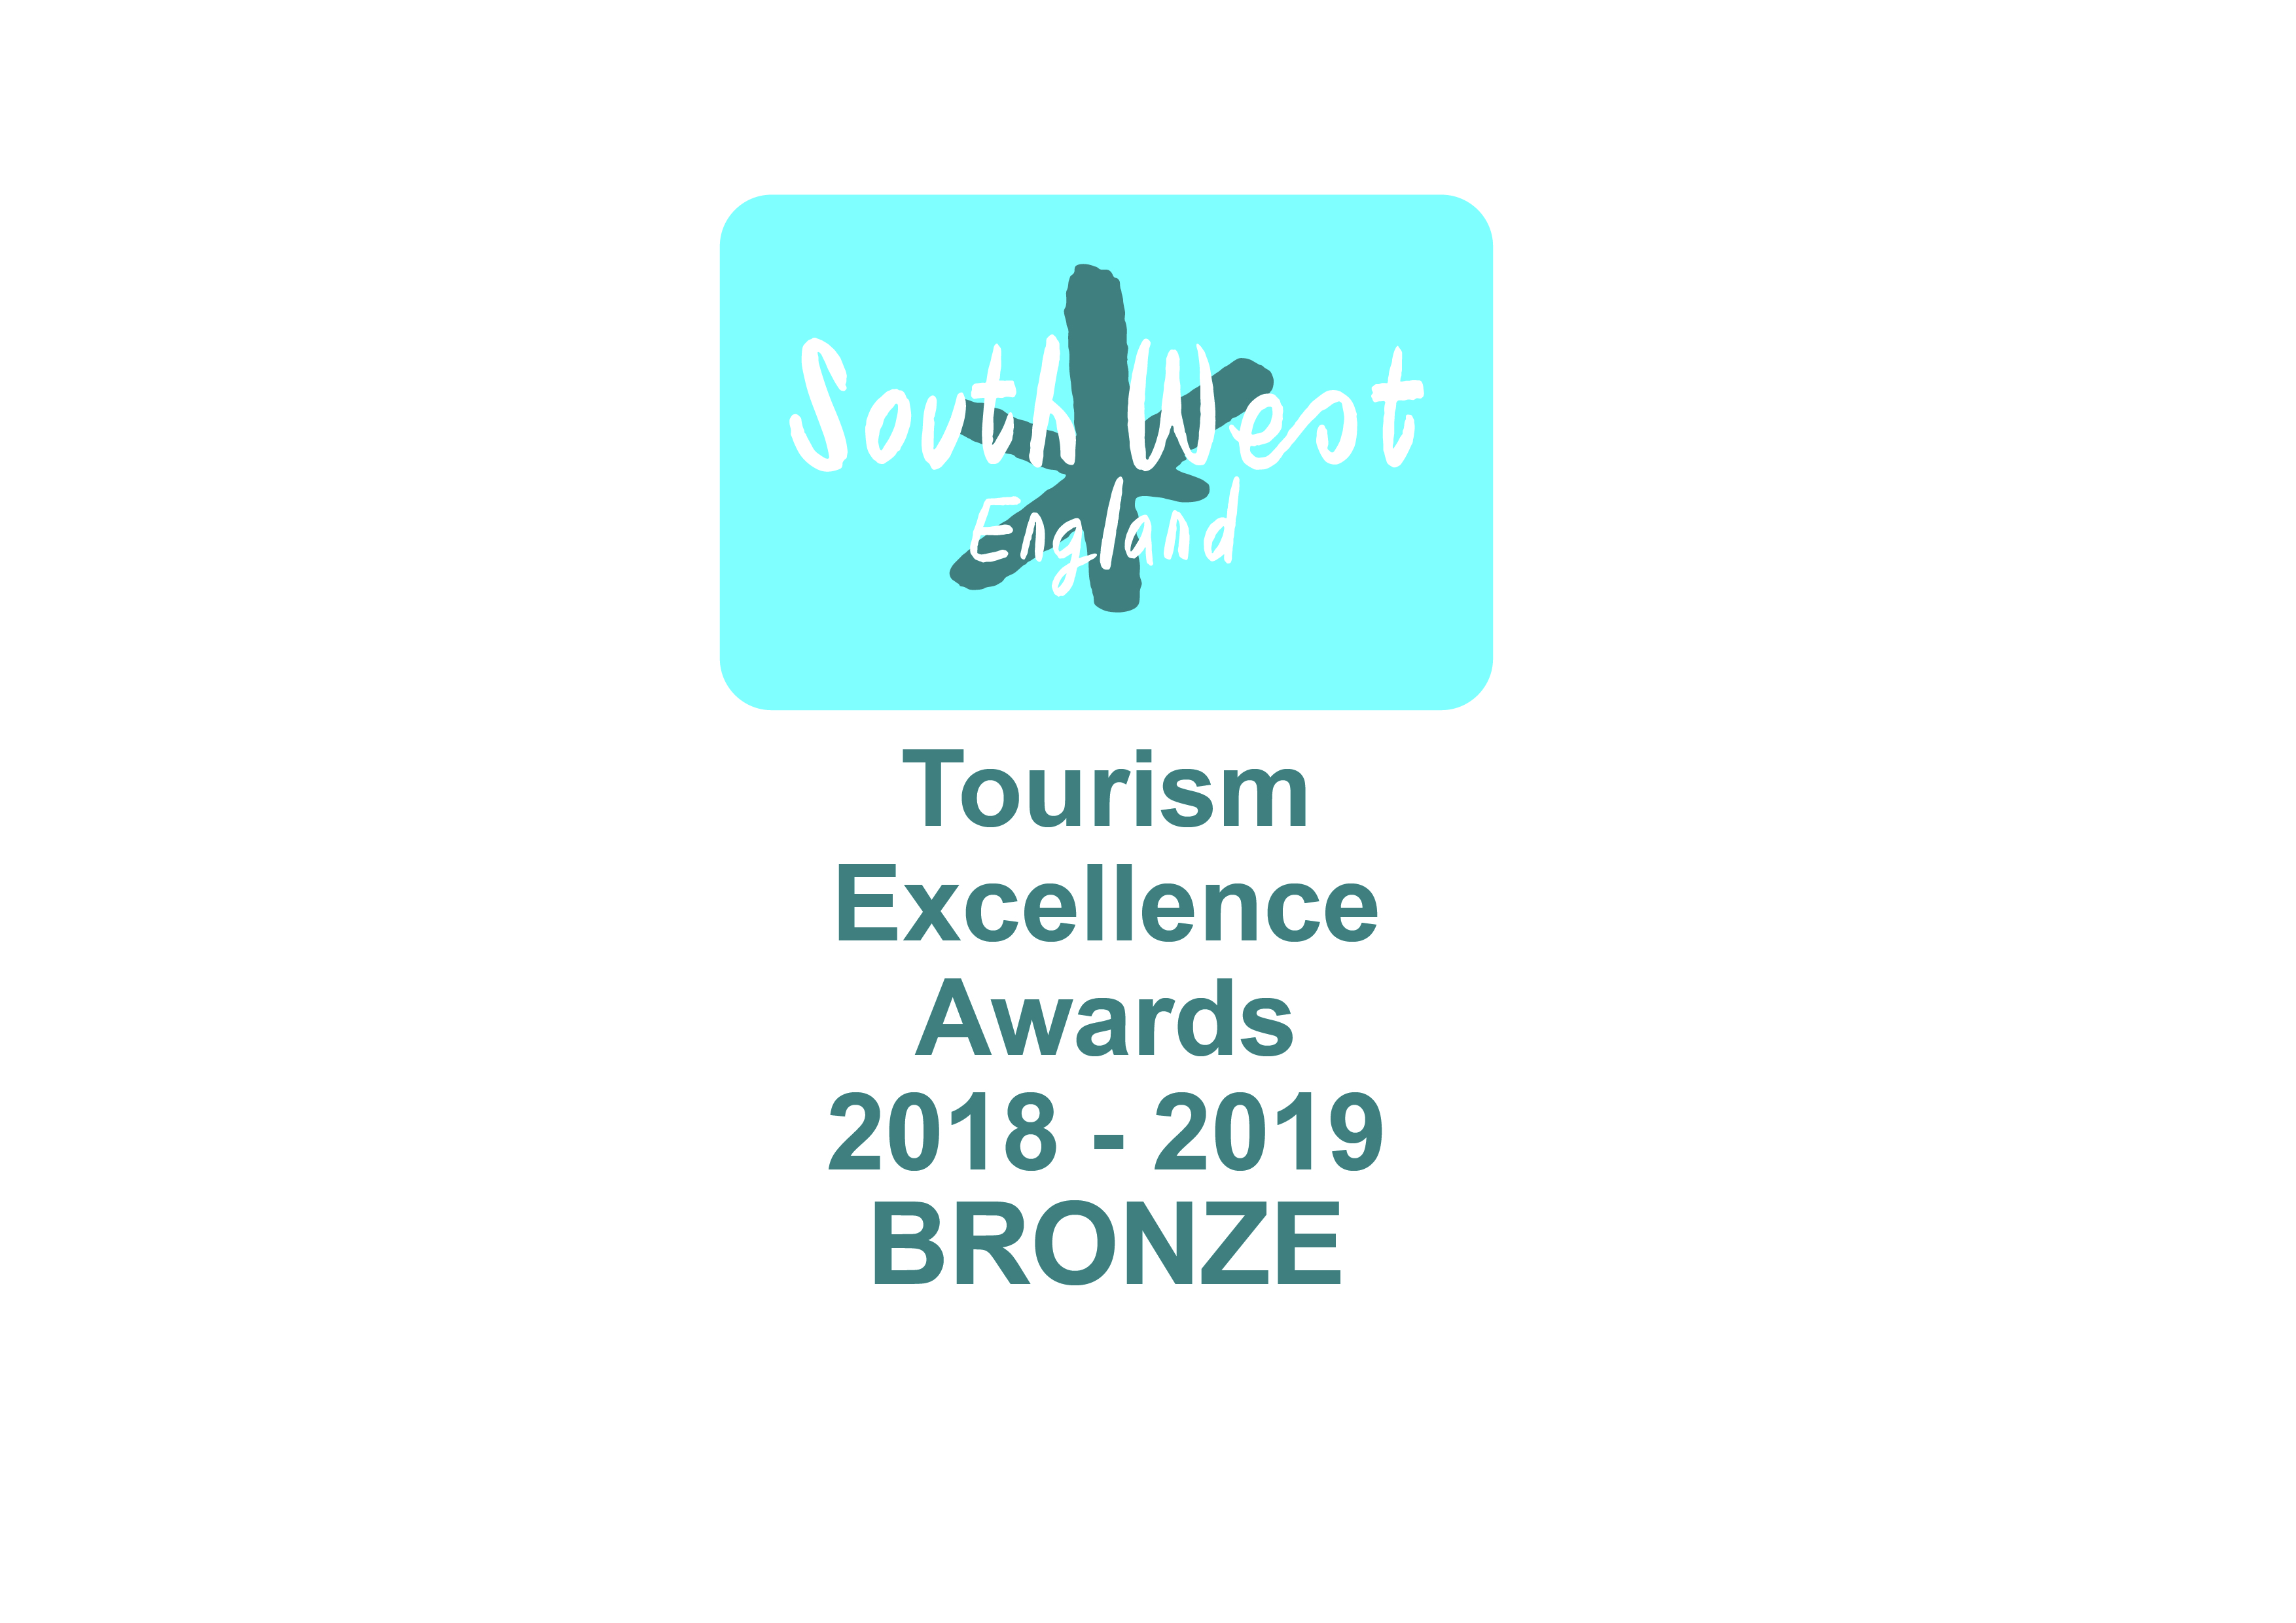 South West Tourism Excellence Award 2018- 2019 – Bronze